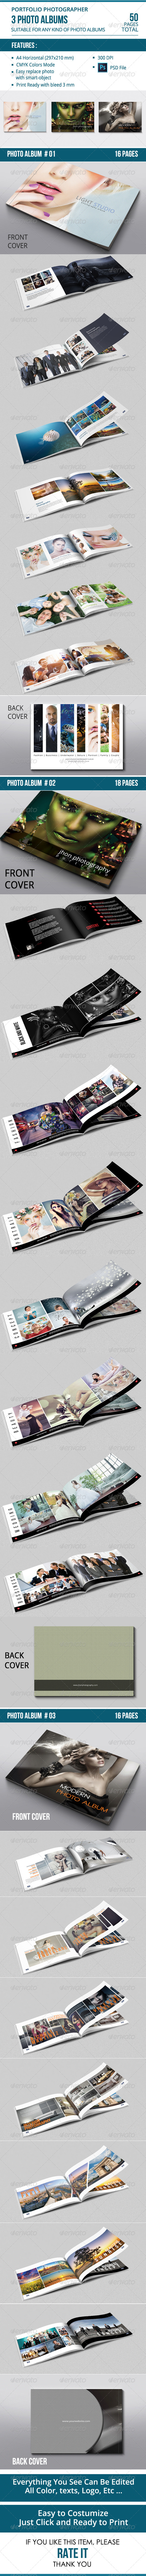 Photo Albums Bundle Vol. 01